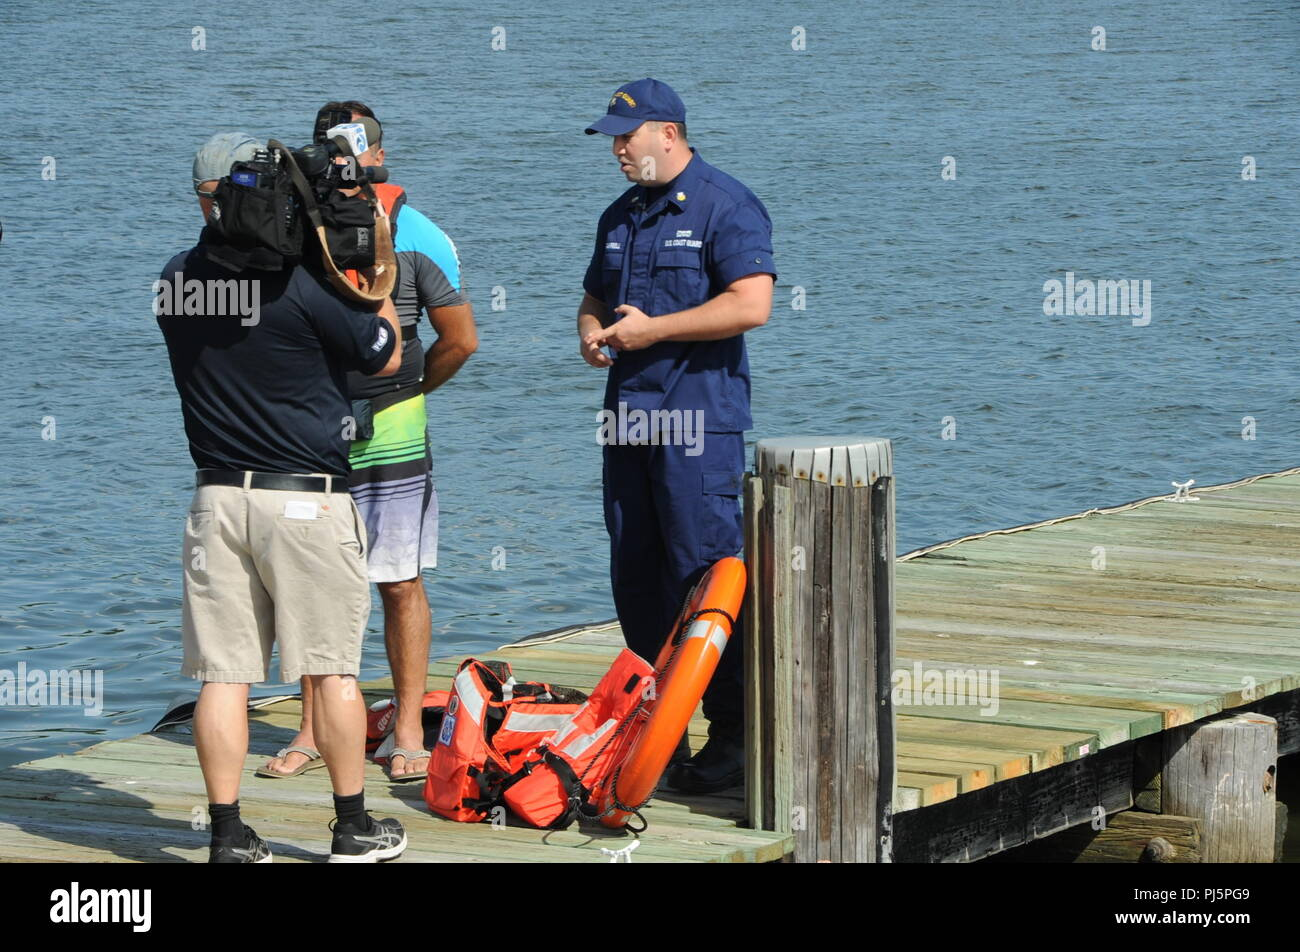 Coast Guard Petty Officer 1st Class William Campbell, the executive petty officer for the Cutter Razorbill, explains the different types of life jacket types to Walter Hilderbrand, a photojournalist at WAVY News 10, during a life jacket demonstration August 24, 2018, in Portsmouth, Virginia. Campbell also explained the fives different types of personal flotation devices that are available to all mariners, and how to properly use them in emergency situations. (U.S. Coast Guard photo by Petty Officer 3rd Class Shannon Kearney/Released) Stock Photo